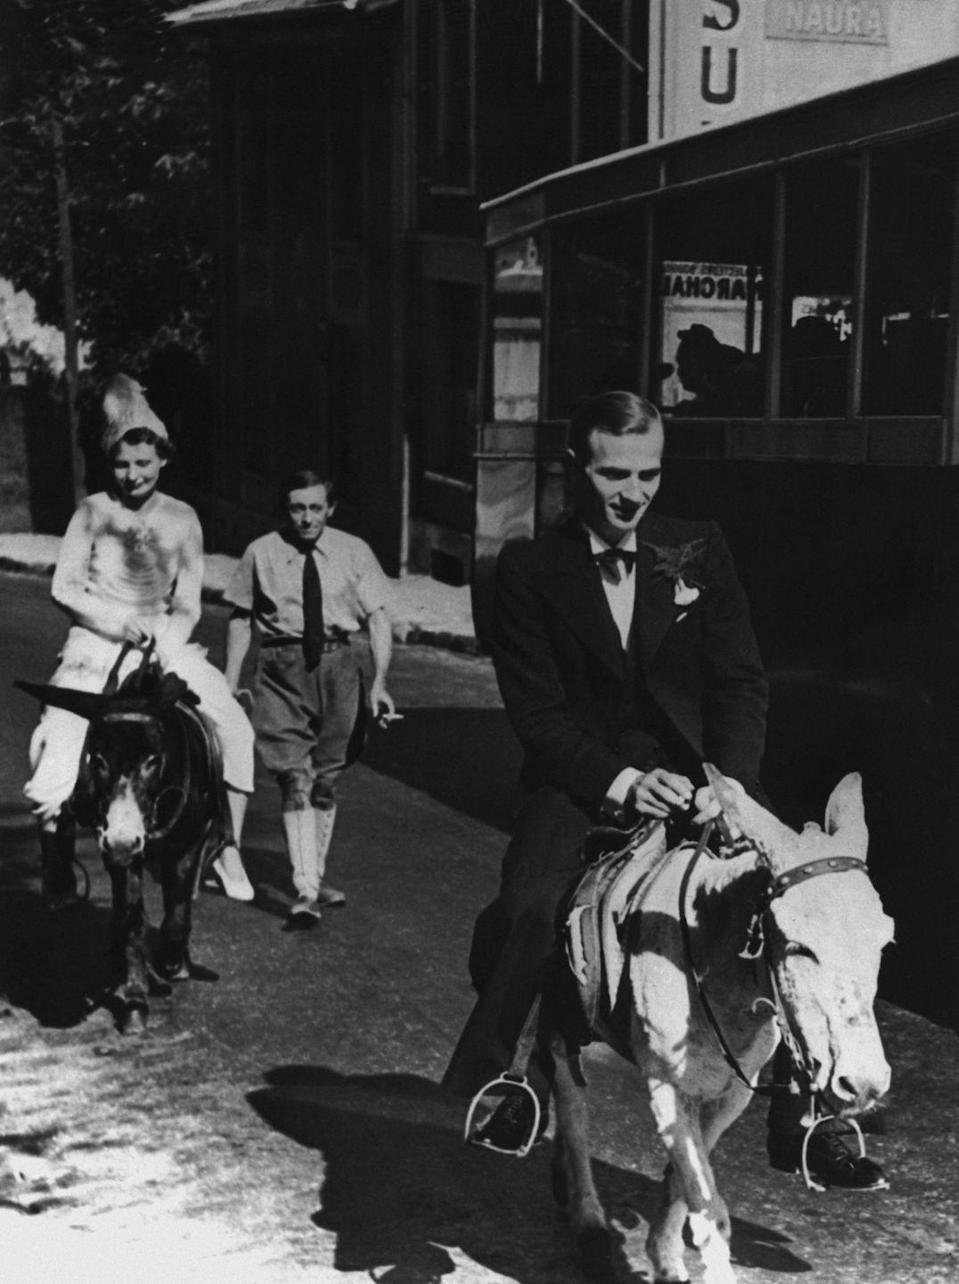 """<p>During World War II, fuel shortages were common in occupied France. As a result, couples who had to travel to their wedding site had to get a little creative. This bride-and-groom hitched a ride on a pair of donkeys. </p><p><a href=""""http://www.goodhousekeeping.com/life/relationships/advice/a24255/wedding-guest-etiquette/"""" rel=""""nofollow noopener"""" target=""""_blank"""" data-ylk=""""slk:The new rules for wedding etiquette »"""" class=""""link rapid-noclick-resp""""><em>The new rules for wedding etiquette »</em></a></p>"""